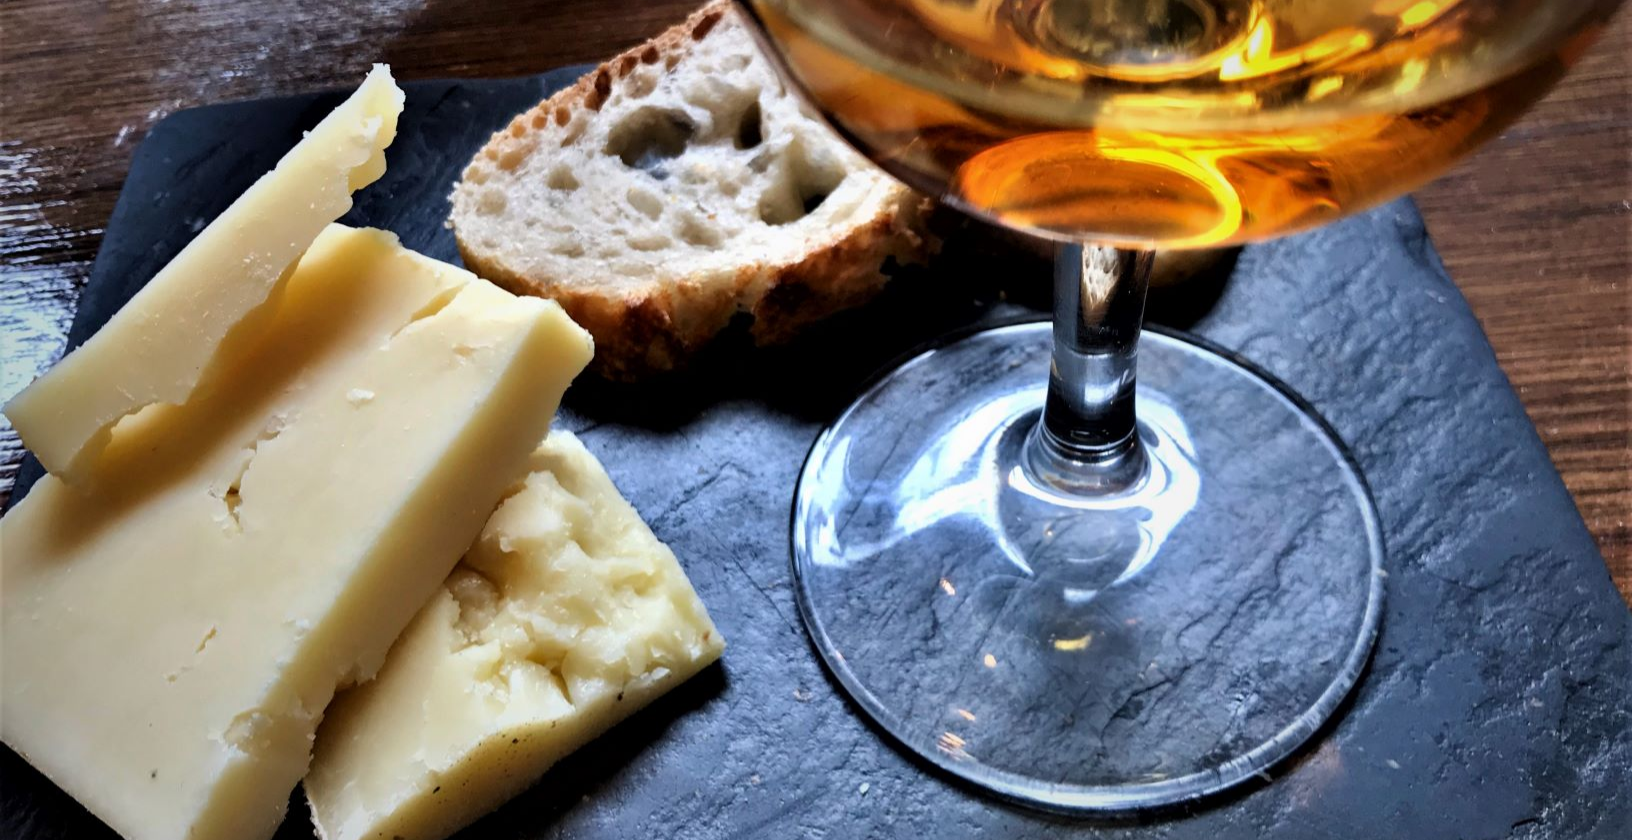 Whiskey & Cheese Pairing w/ Amathus Drinks